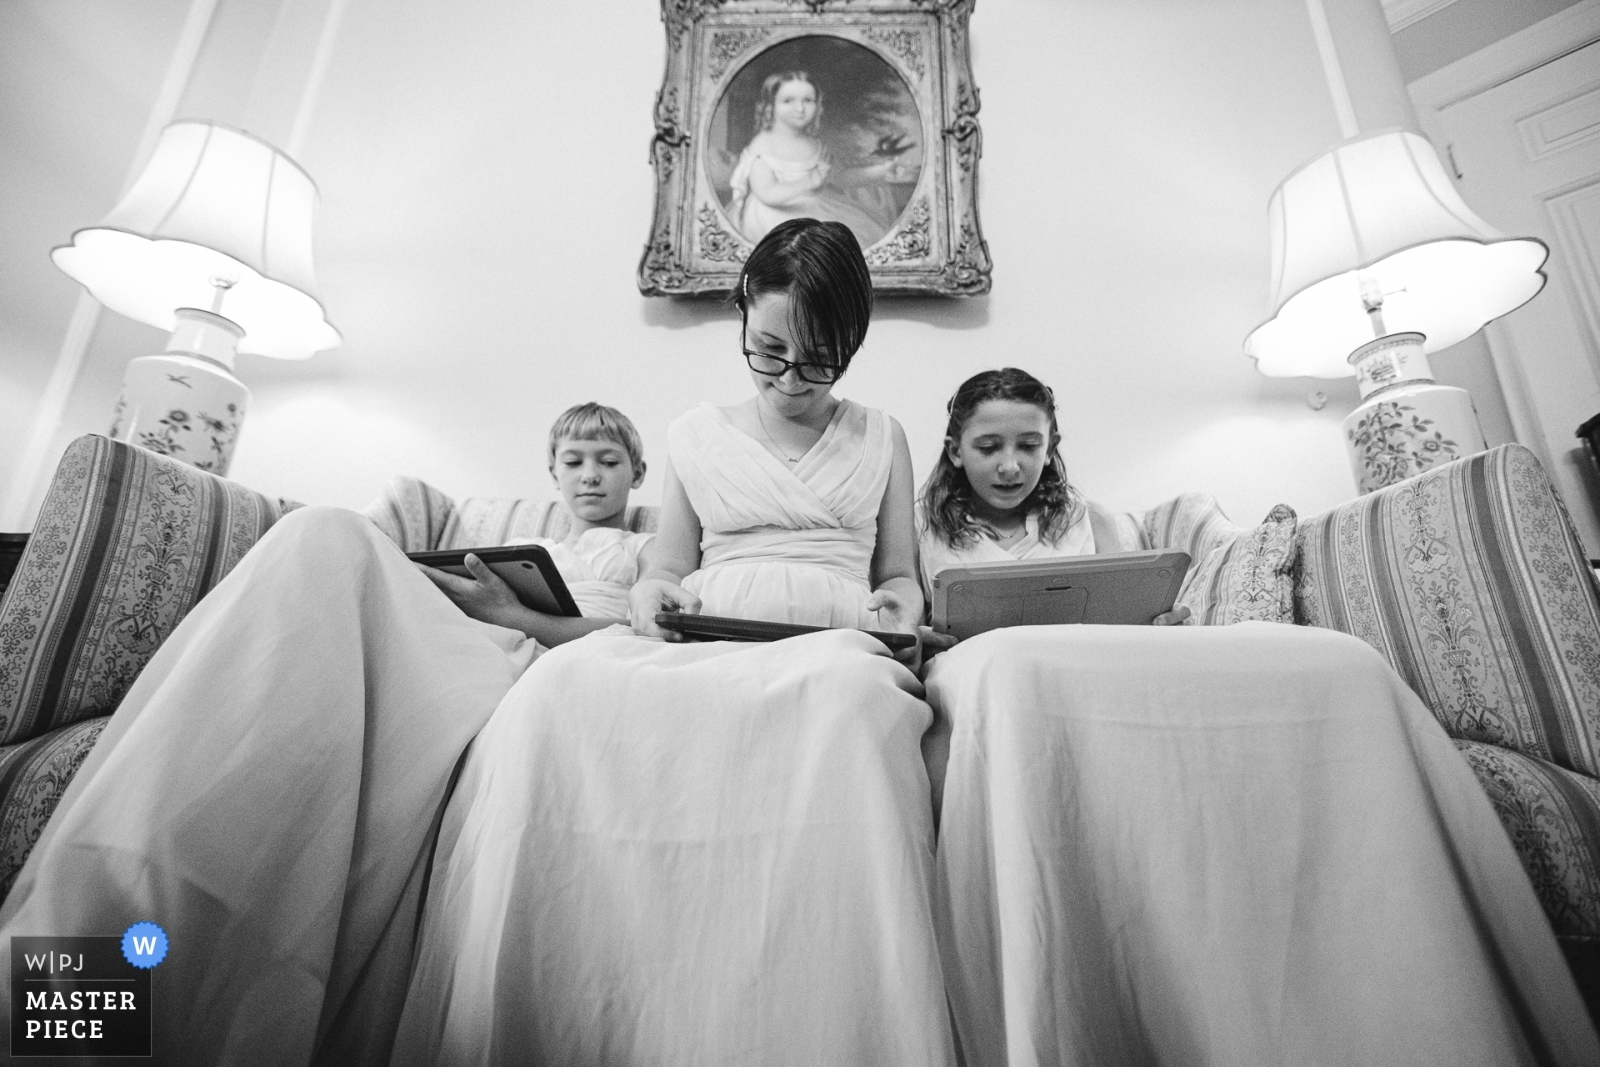 The junior bridesmaids whiling their time, waiting for the ceremony to begin, while their mother helps the bride with final dress adjustments. - Virginia, United States Wedding Photography -  | Whittemore House, Washington DC